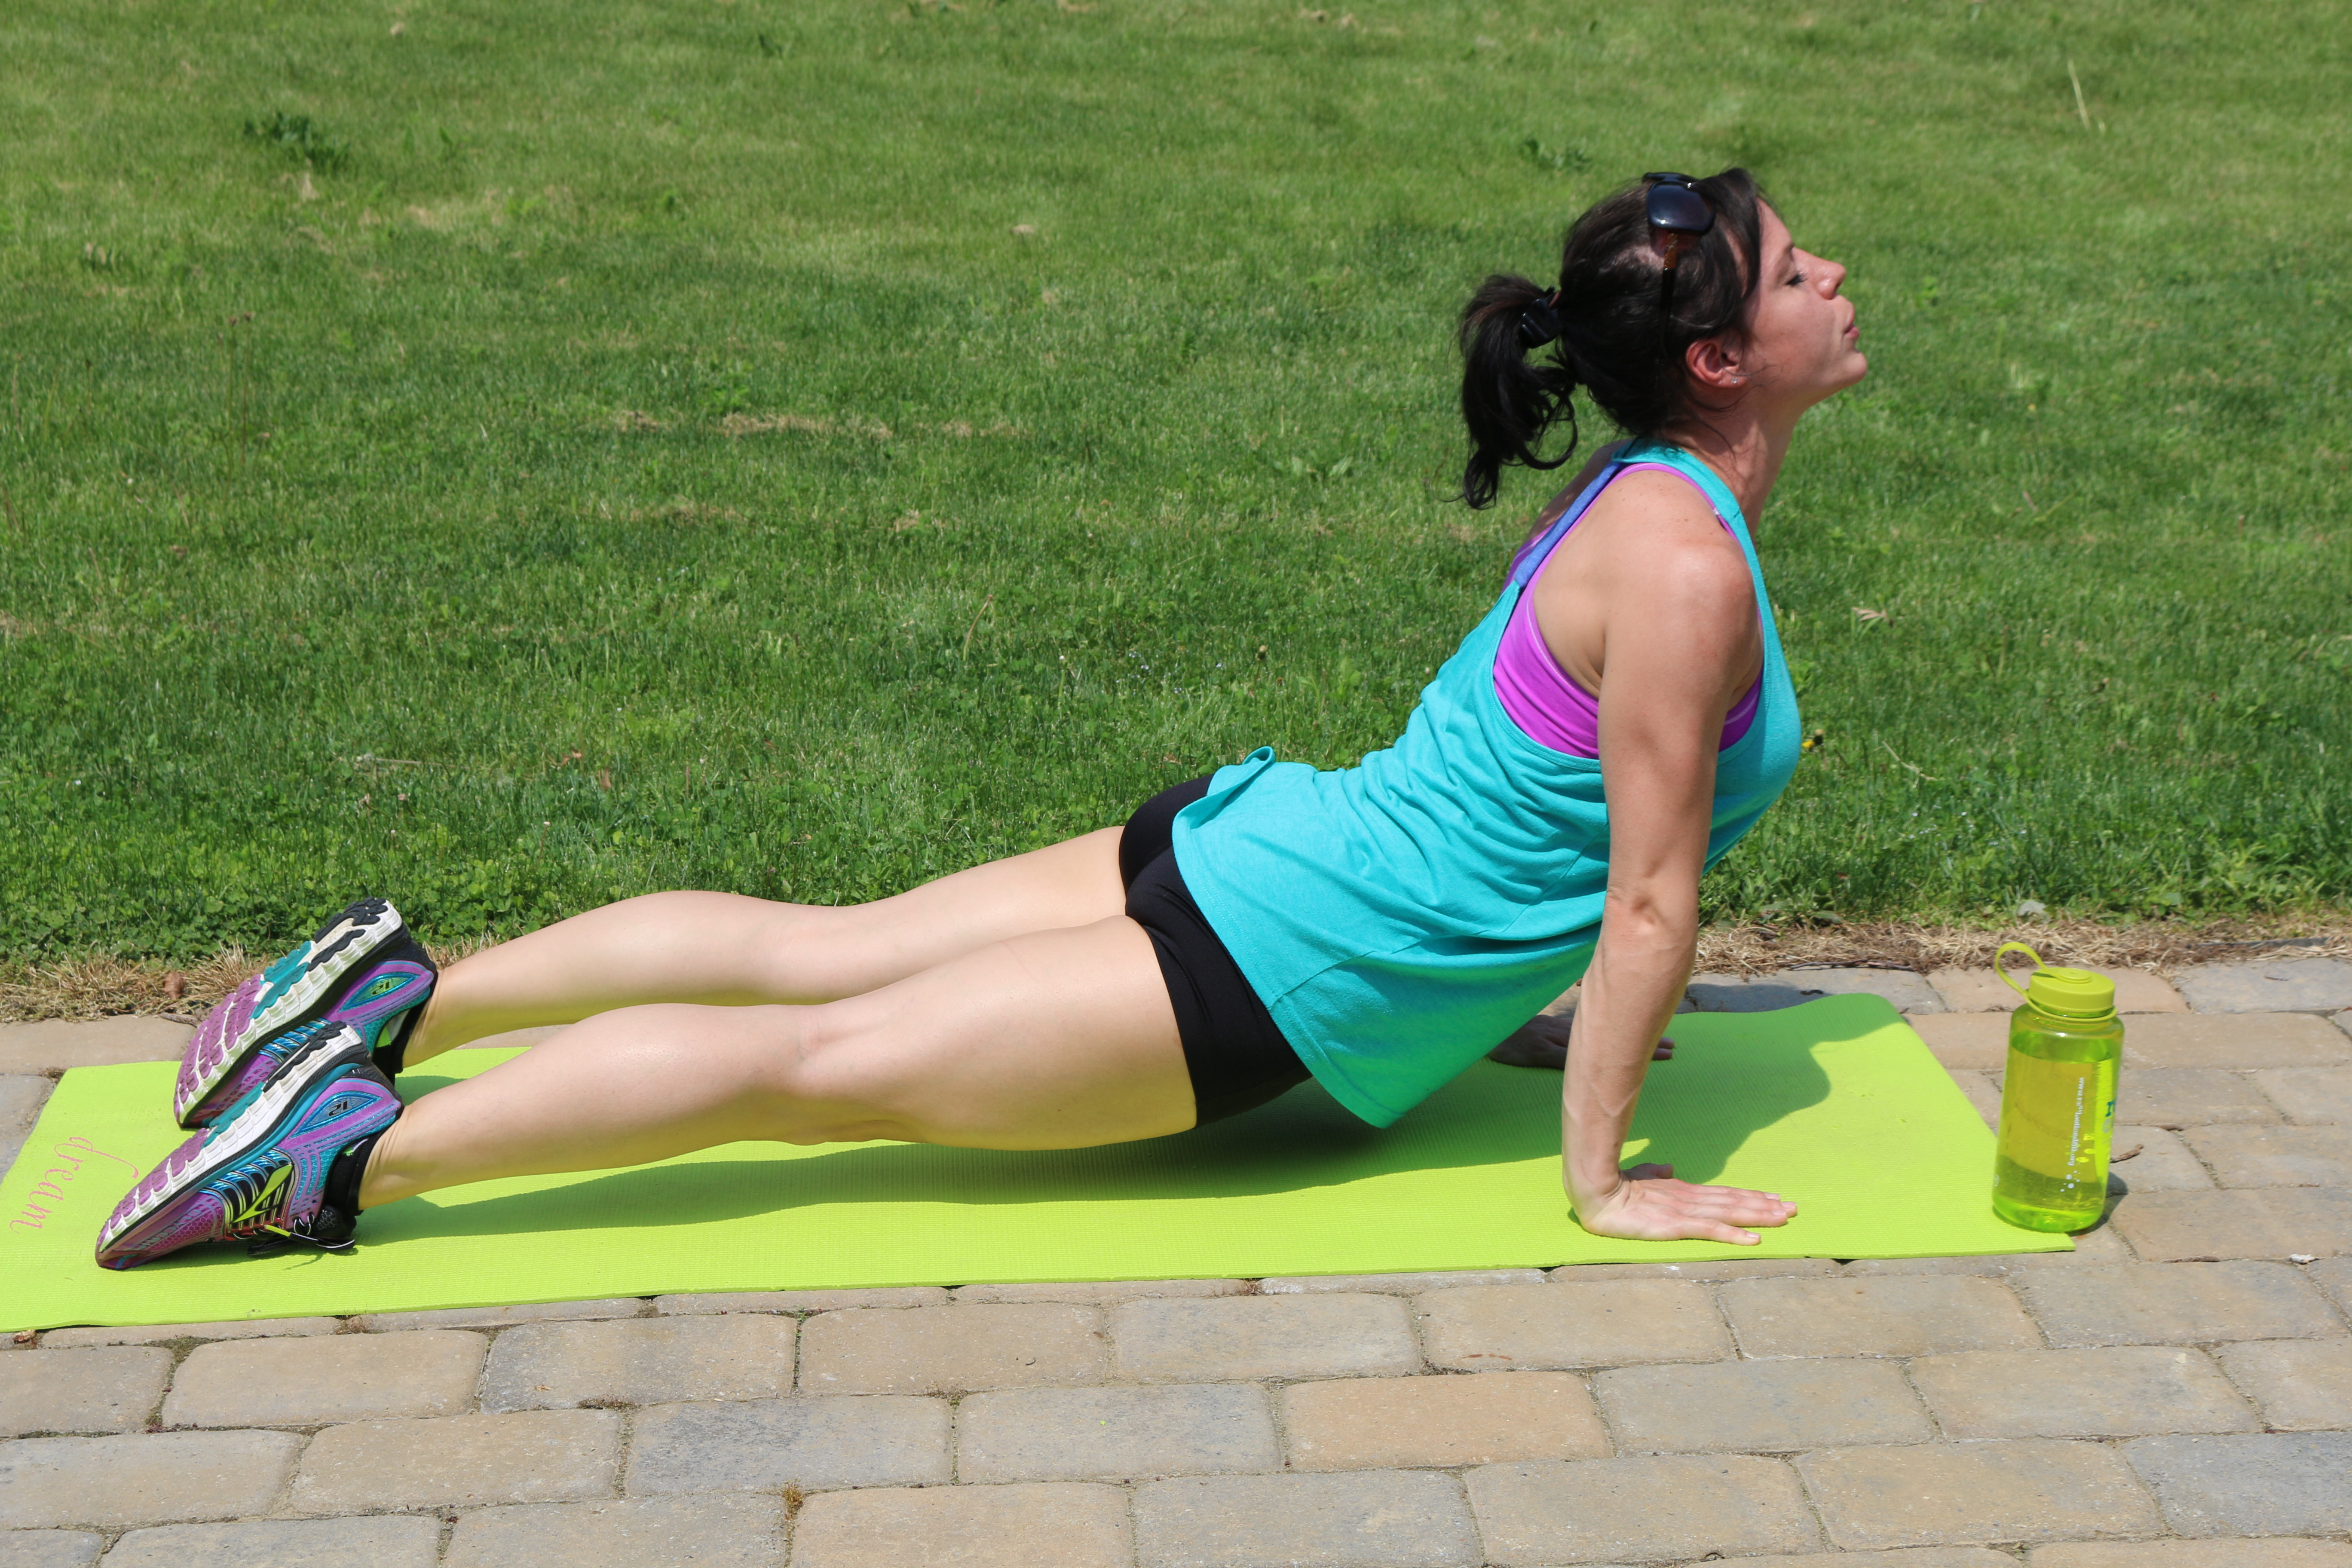 Dive Bomber: Part 3 Press the hips forward. Lift from your lower back, and com into Up Dog position.